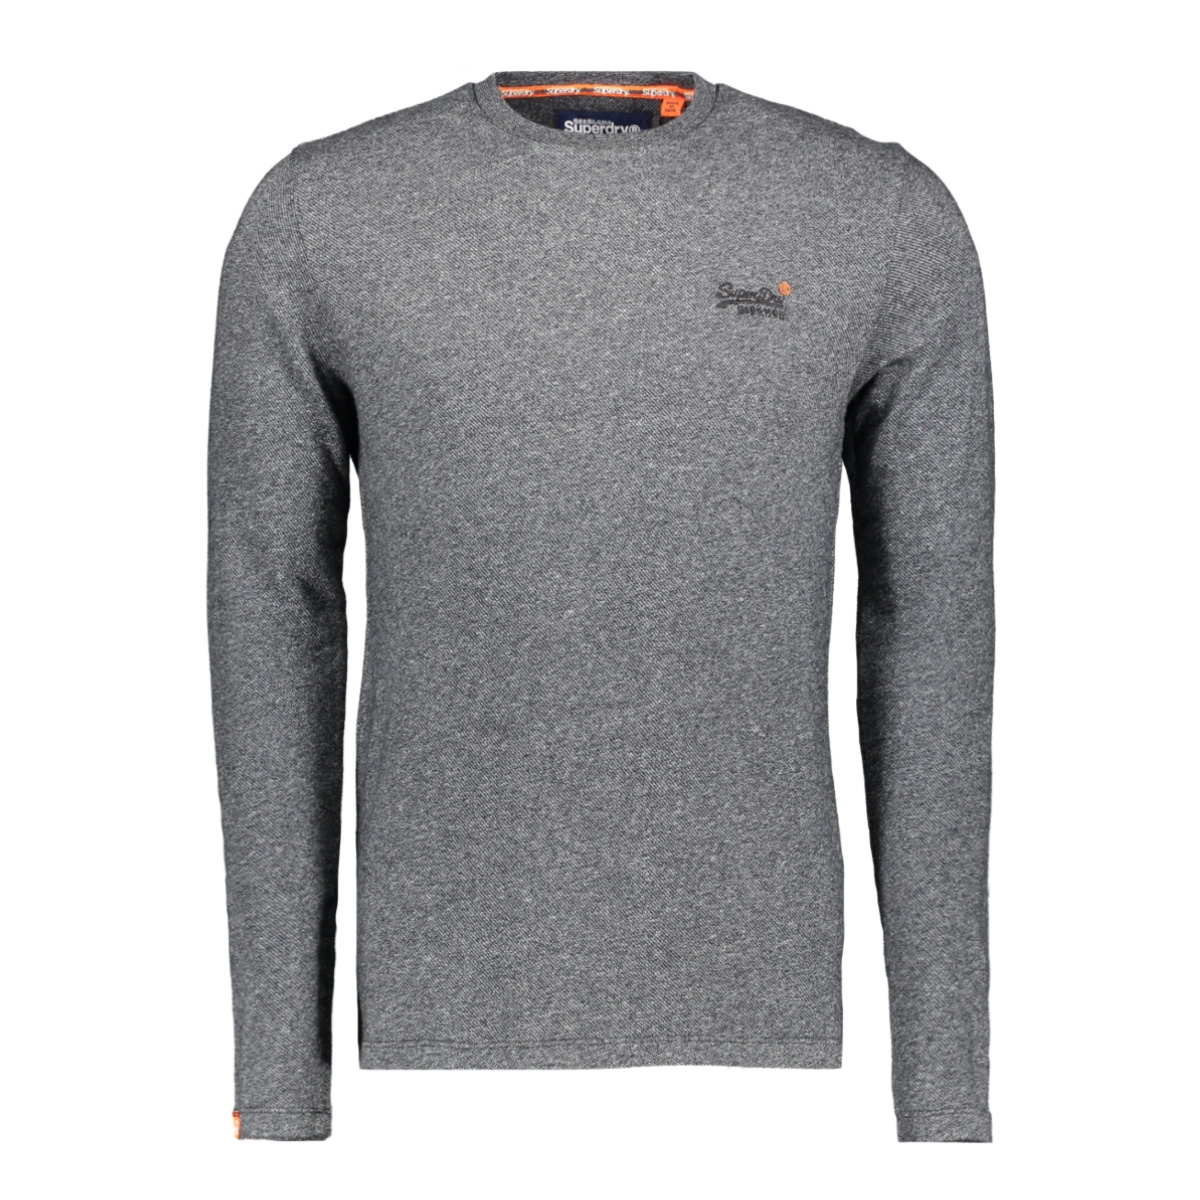 twill texture ls top m6000011a superdry t-shirt basalt grey twill